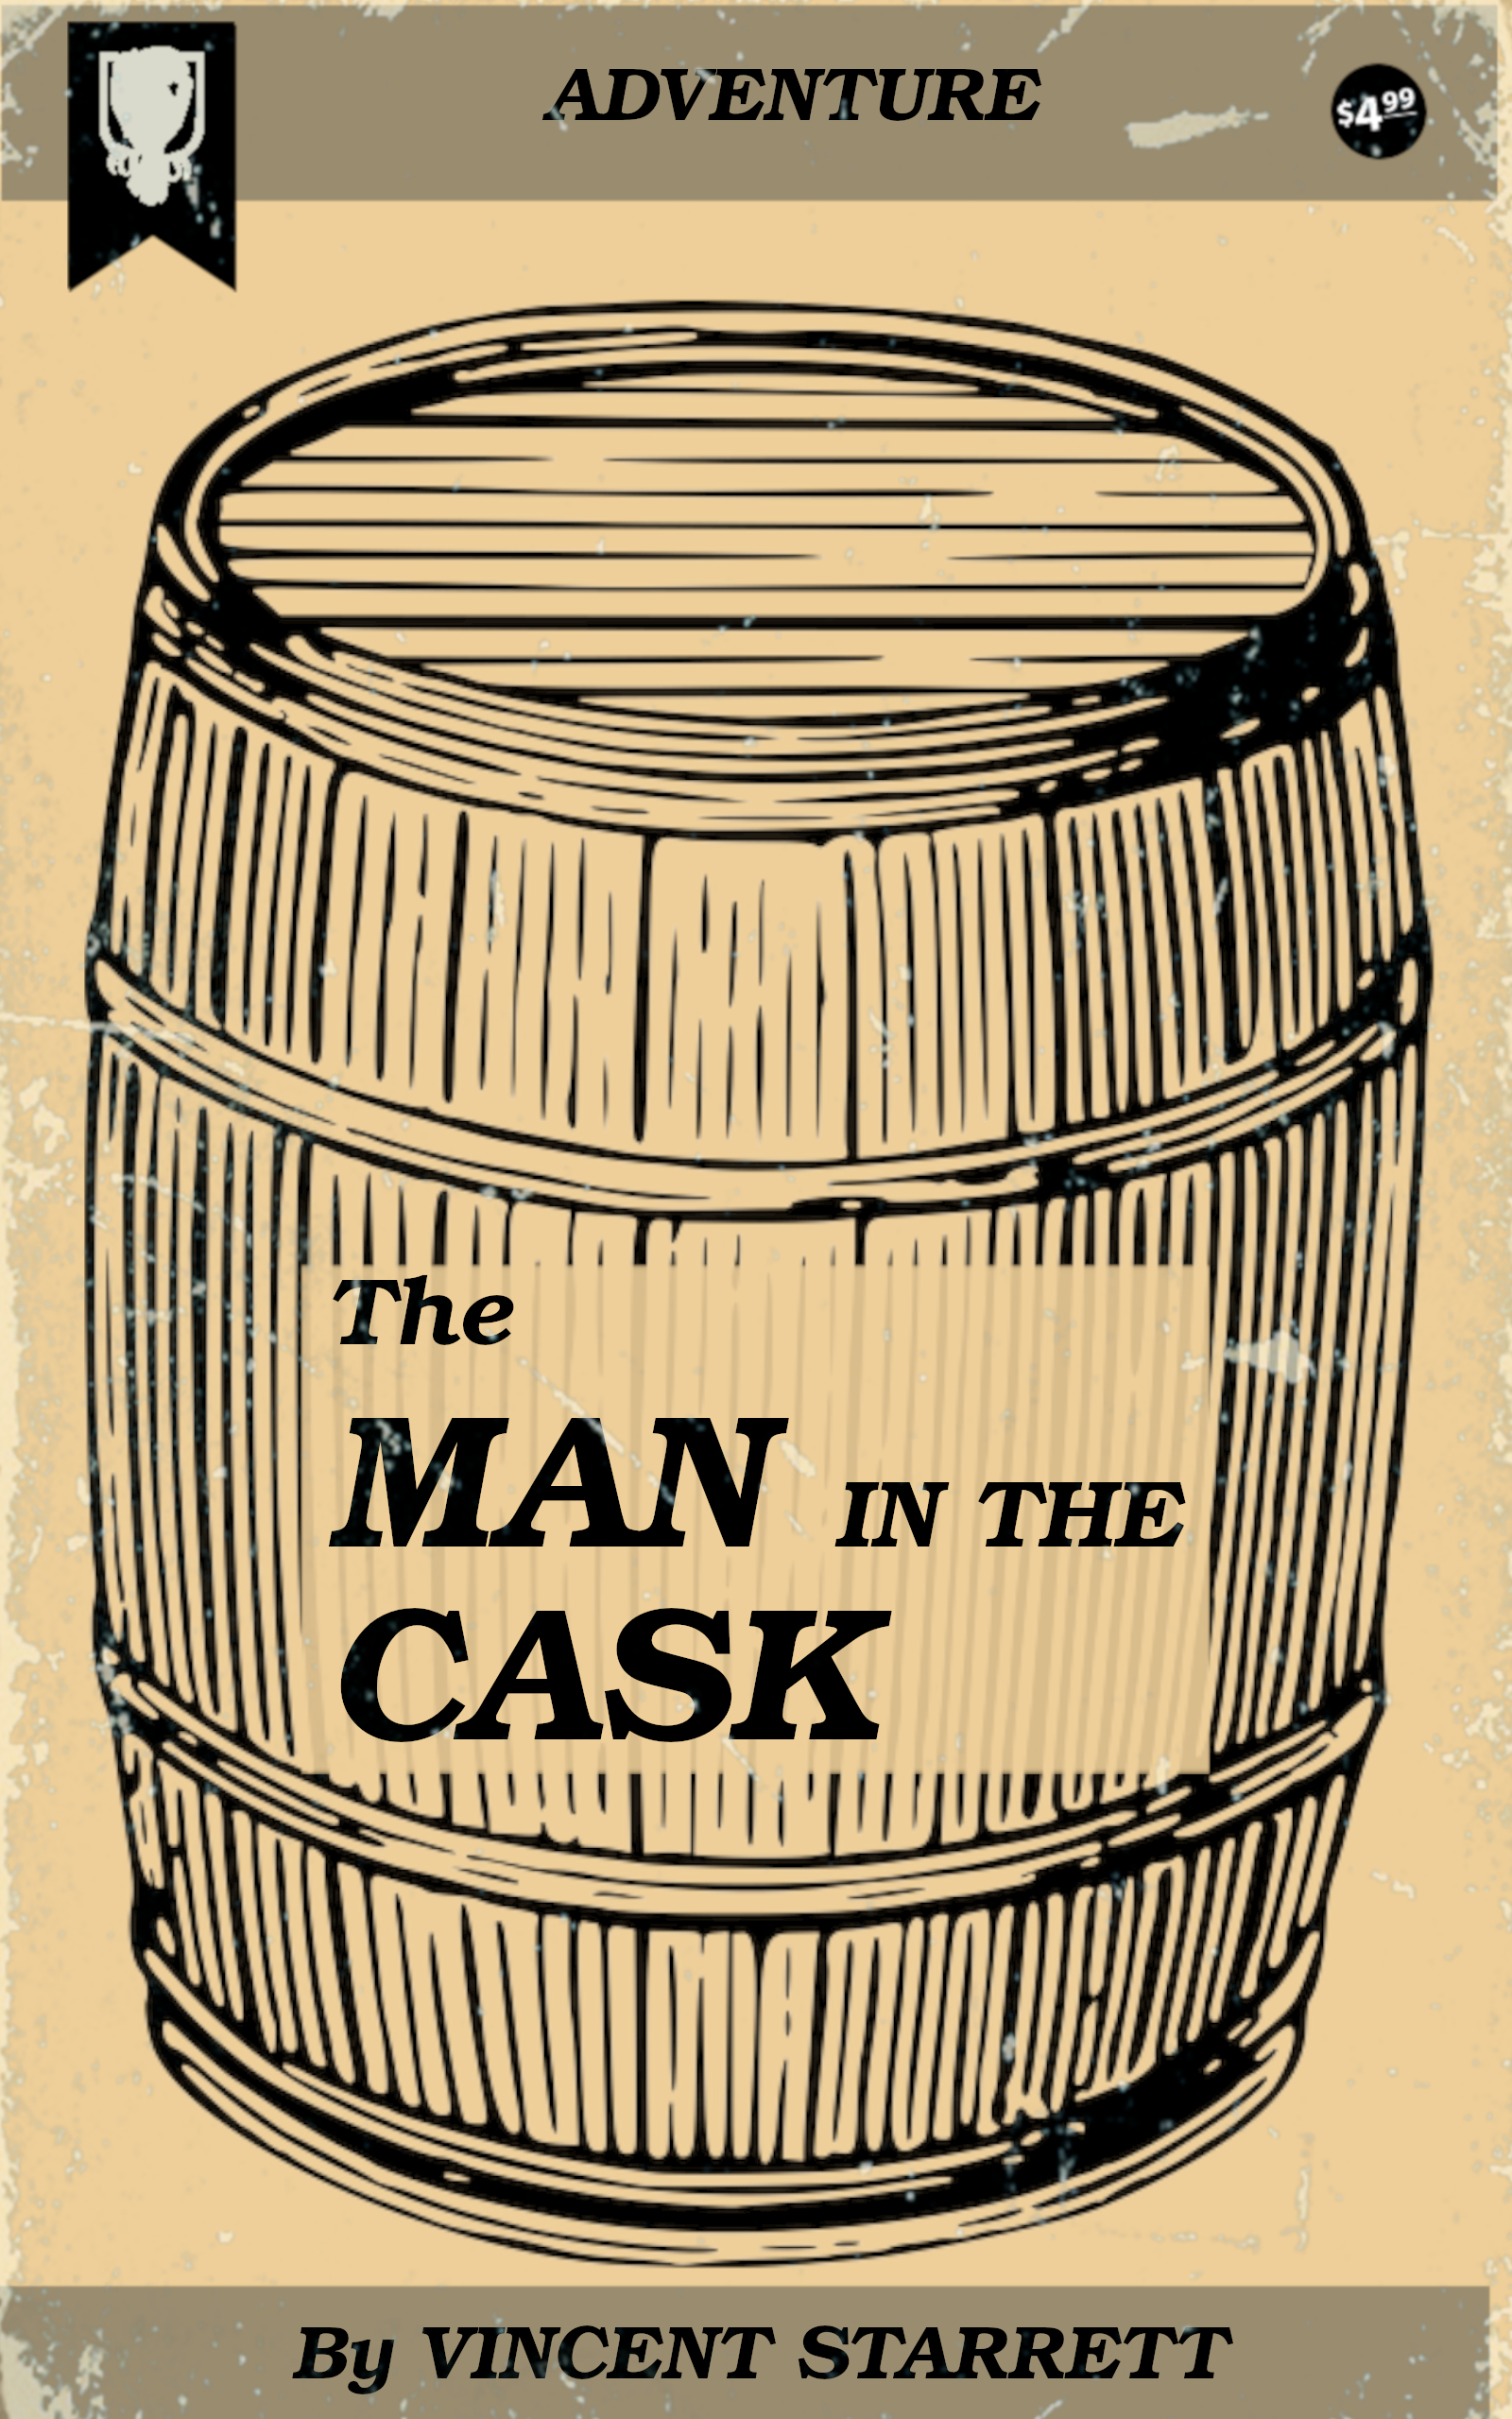 The Man in the Cask by Vincent Starrett